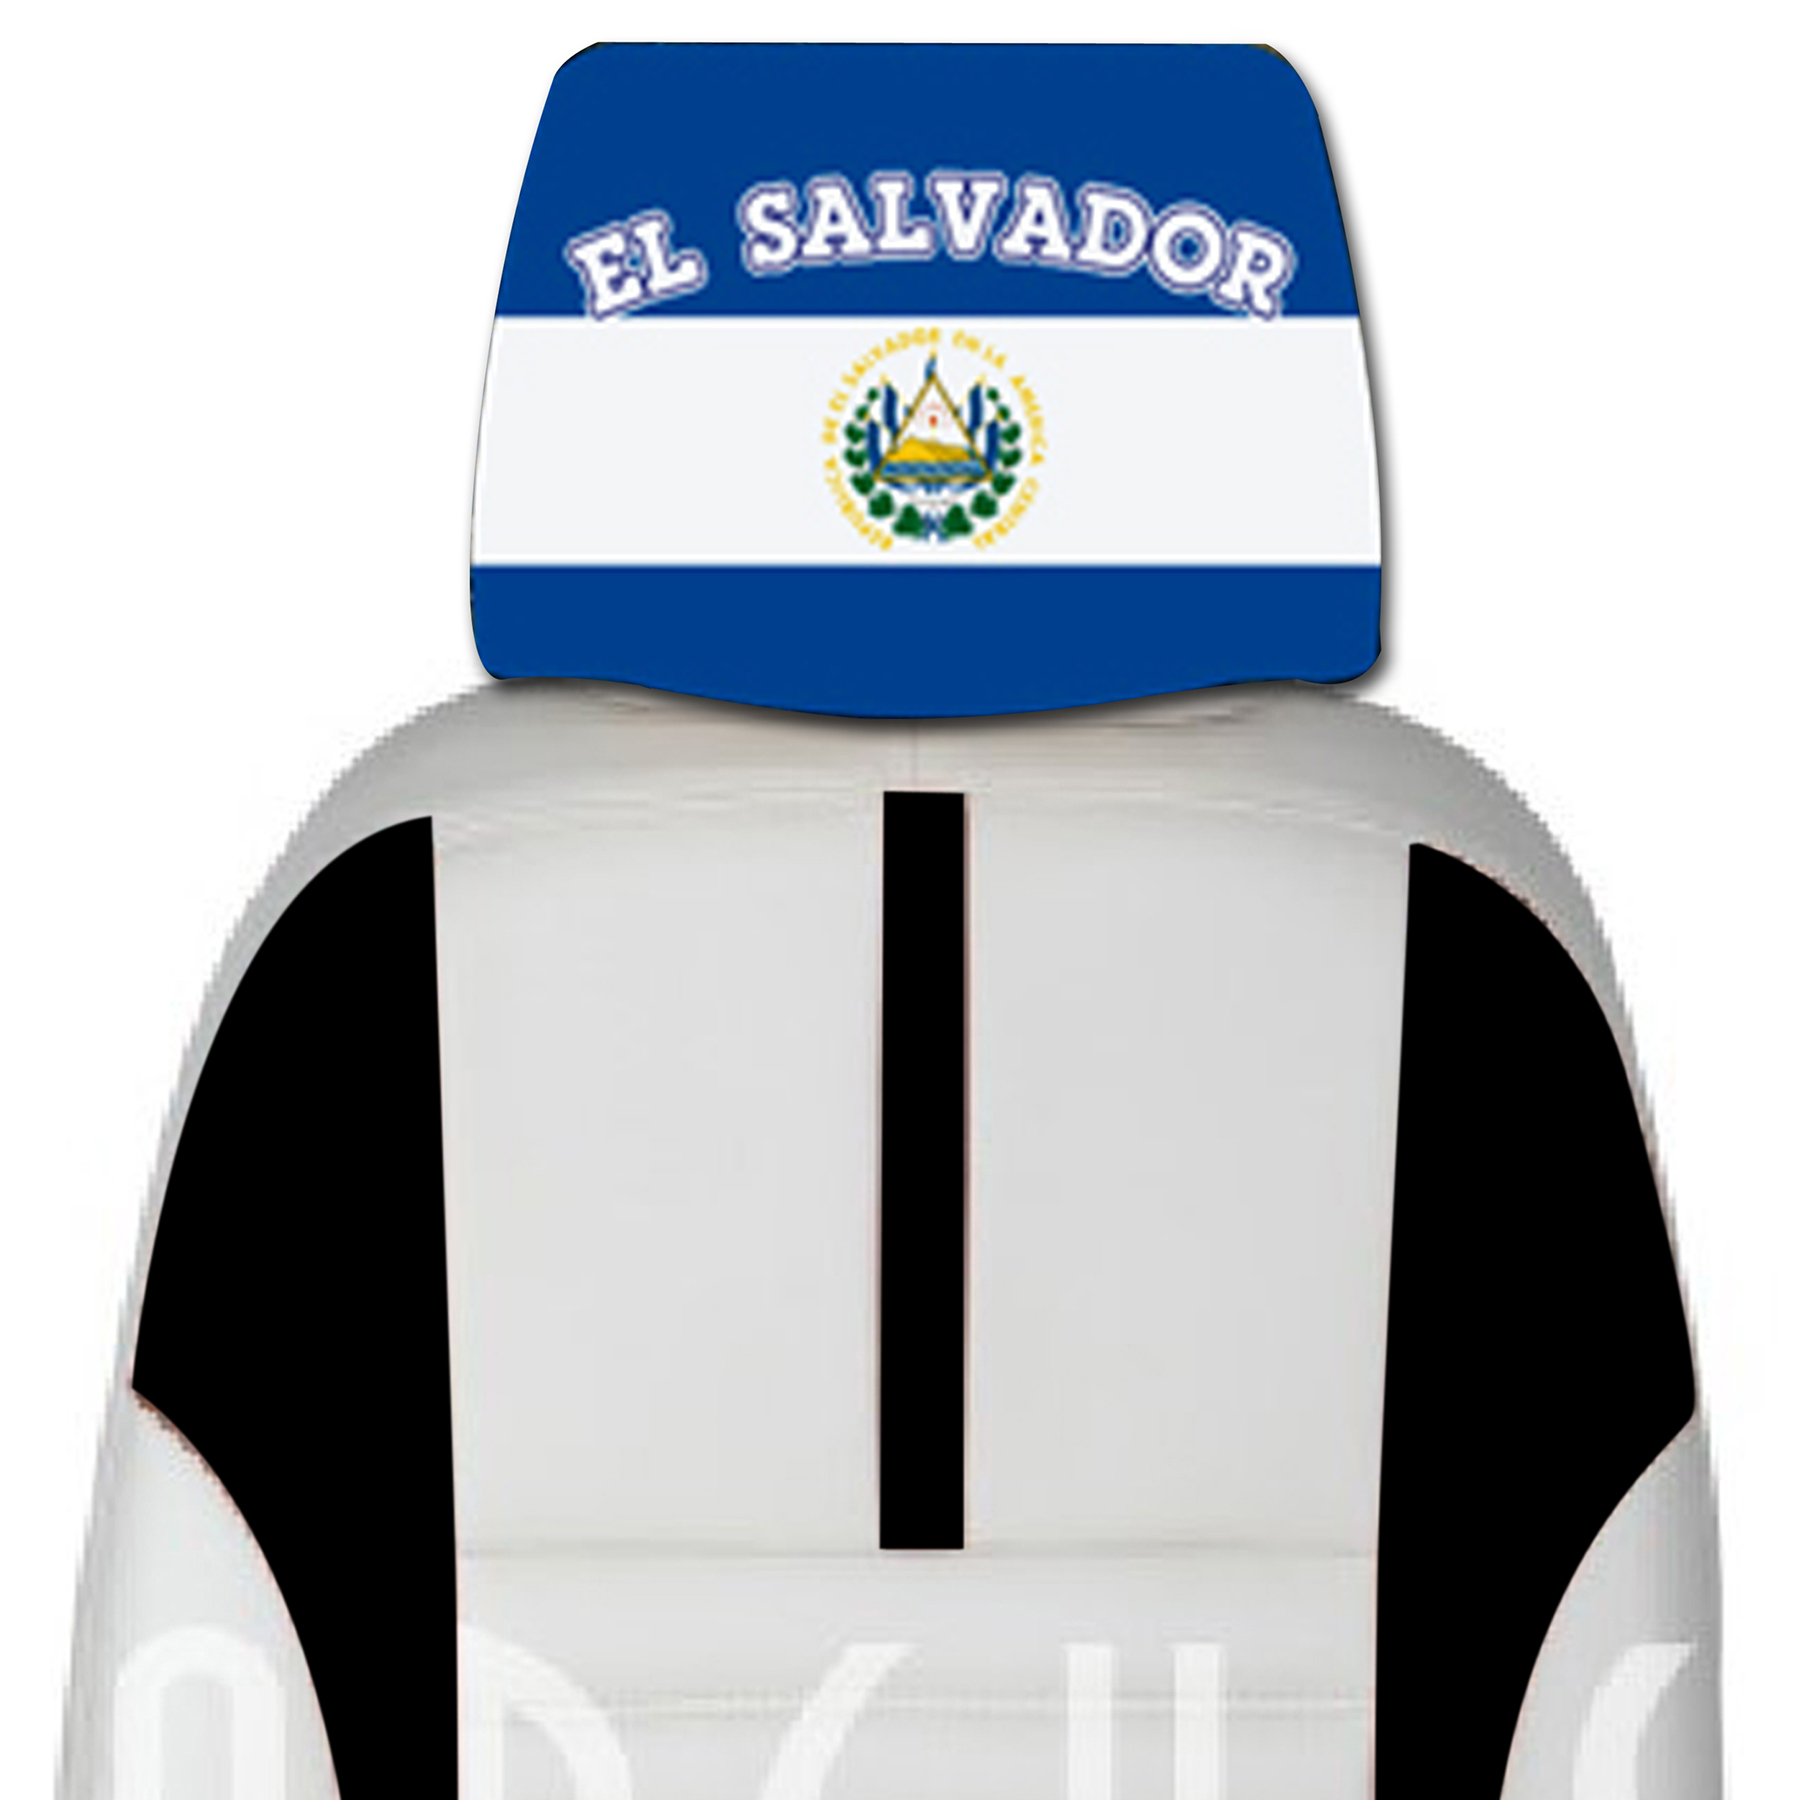 el salvador car cover seat flag. Black Bedroom Furniture Sets. Home Design Ideas